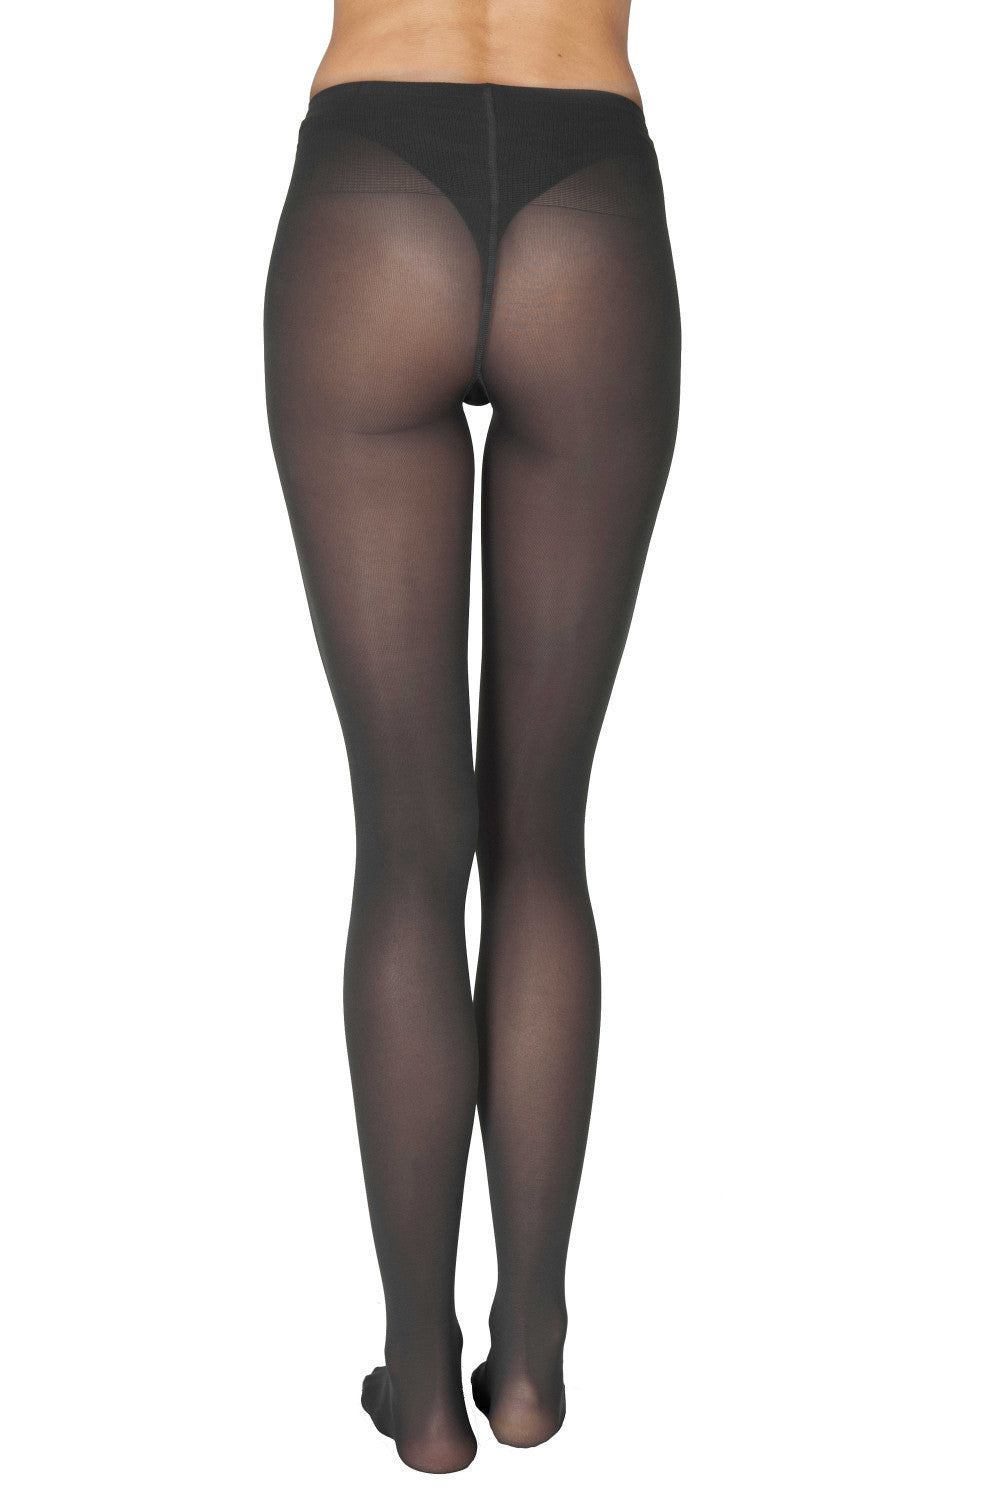 Swedish Stockings Olivia Anthracite 60 den